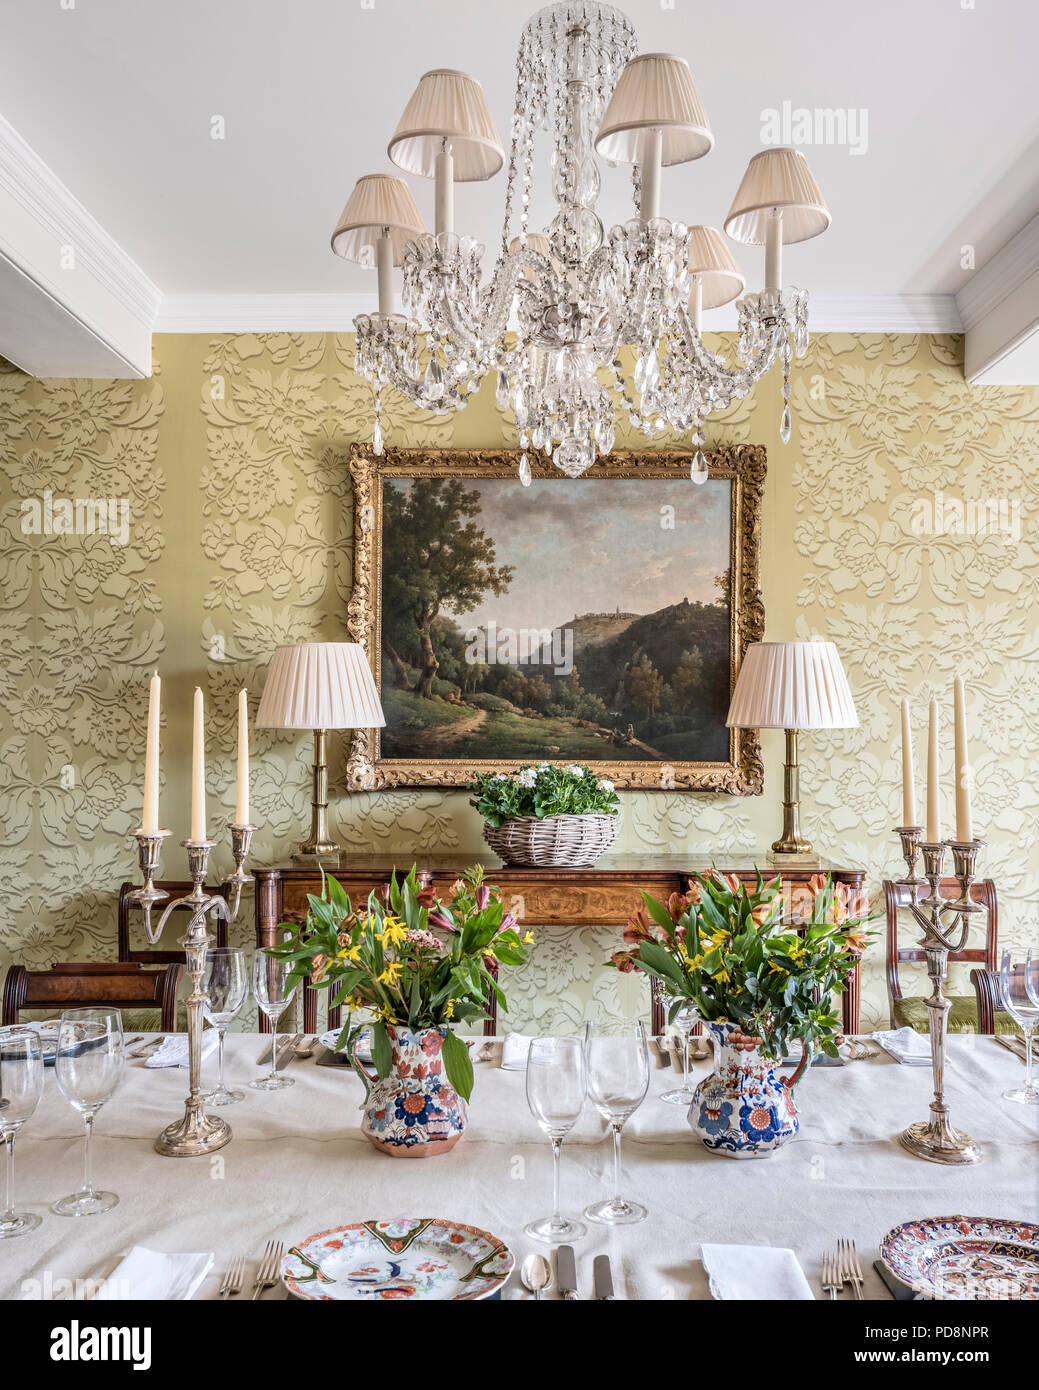 Large Framed Artwork In Dining Room With Glass Chandelier